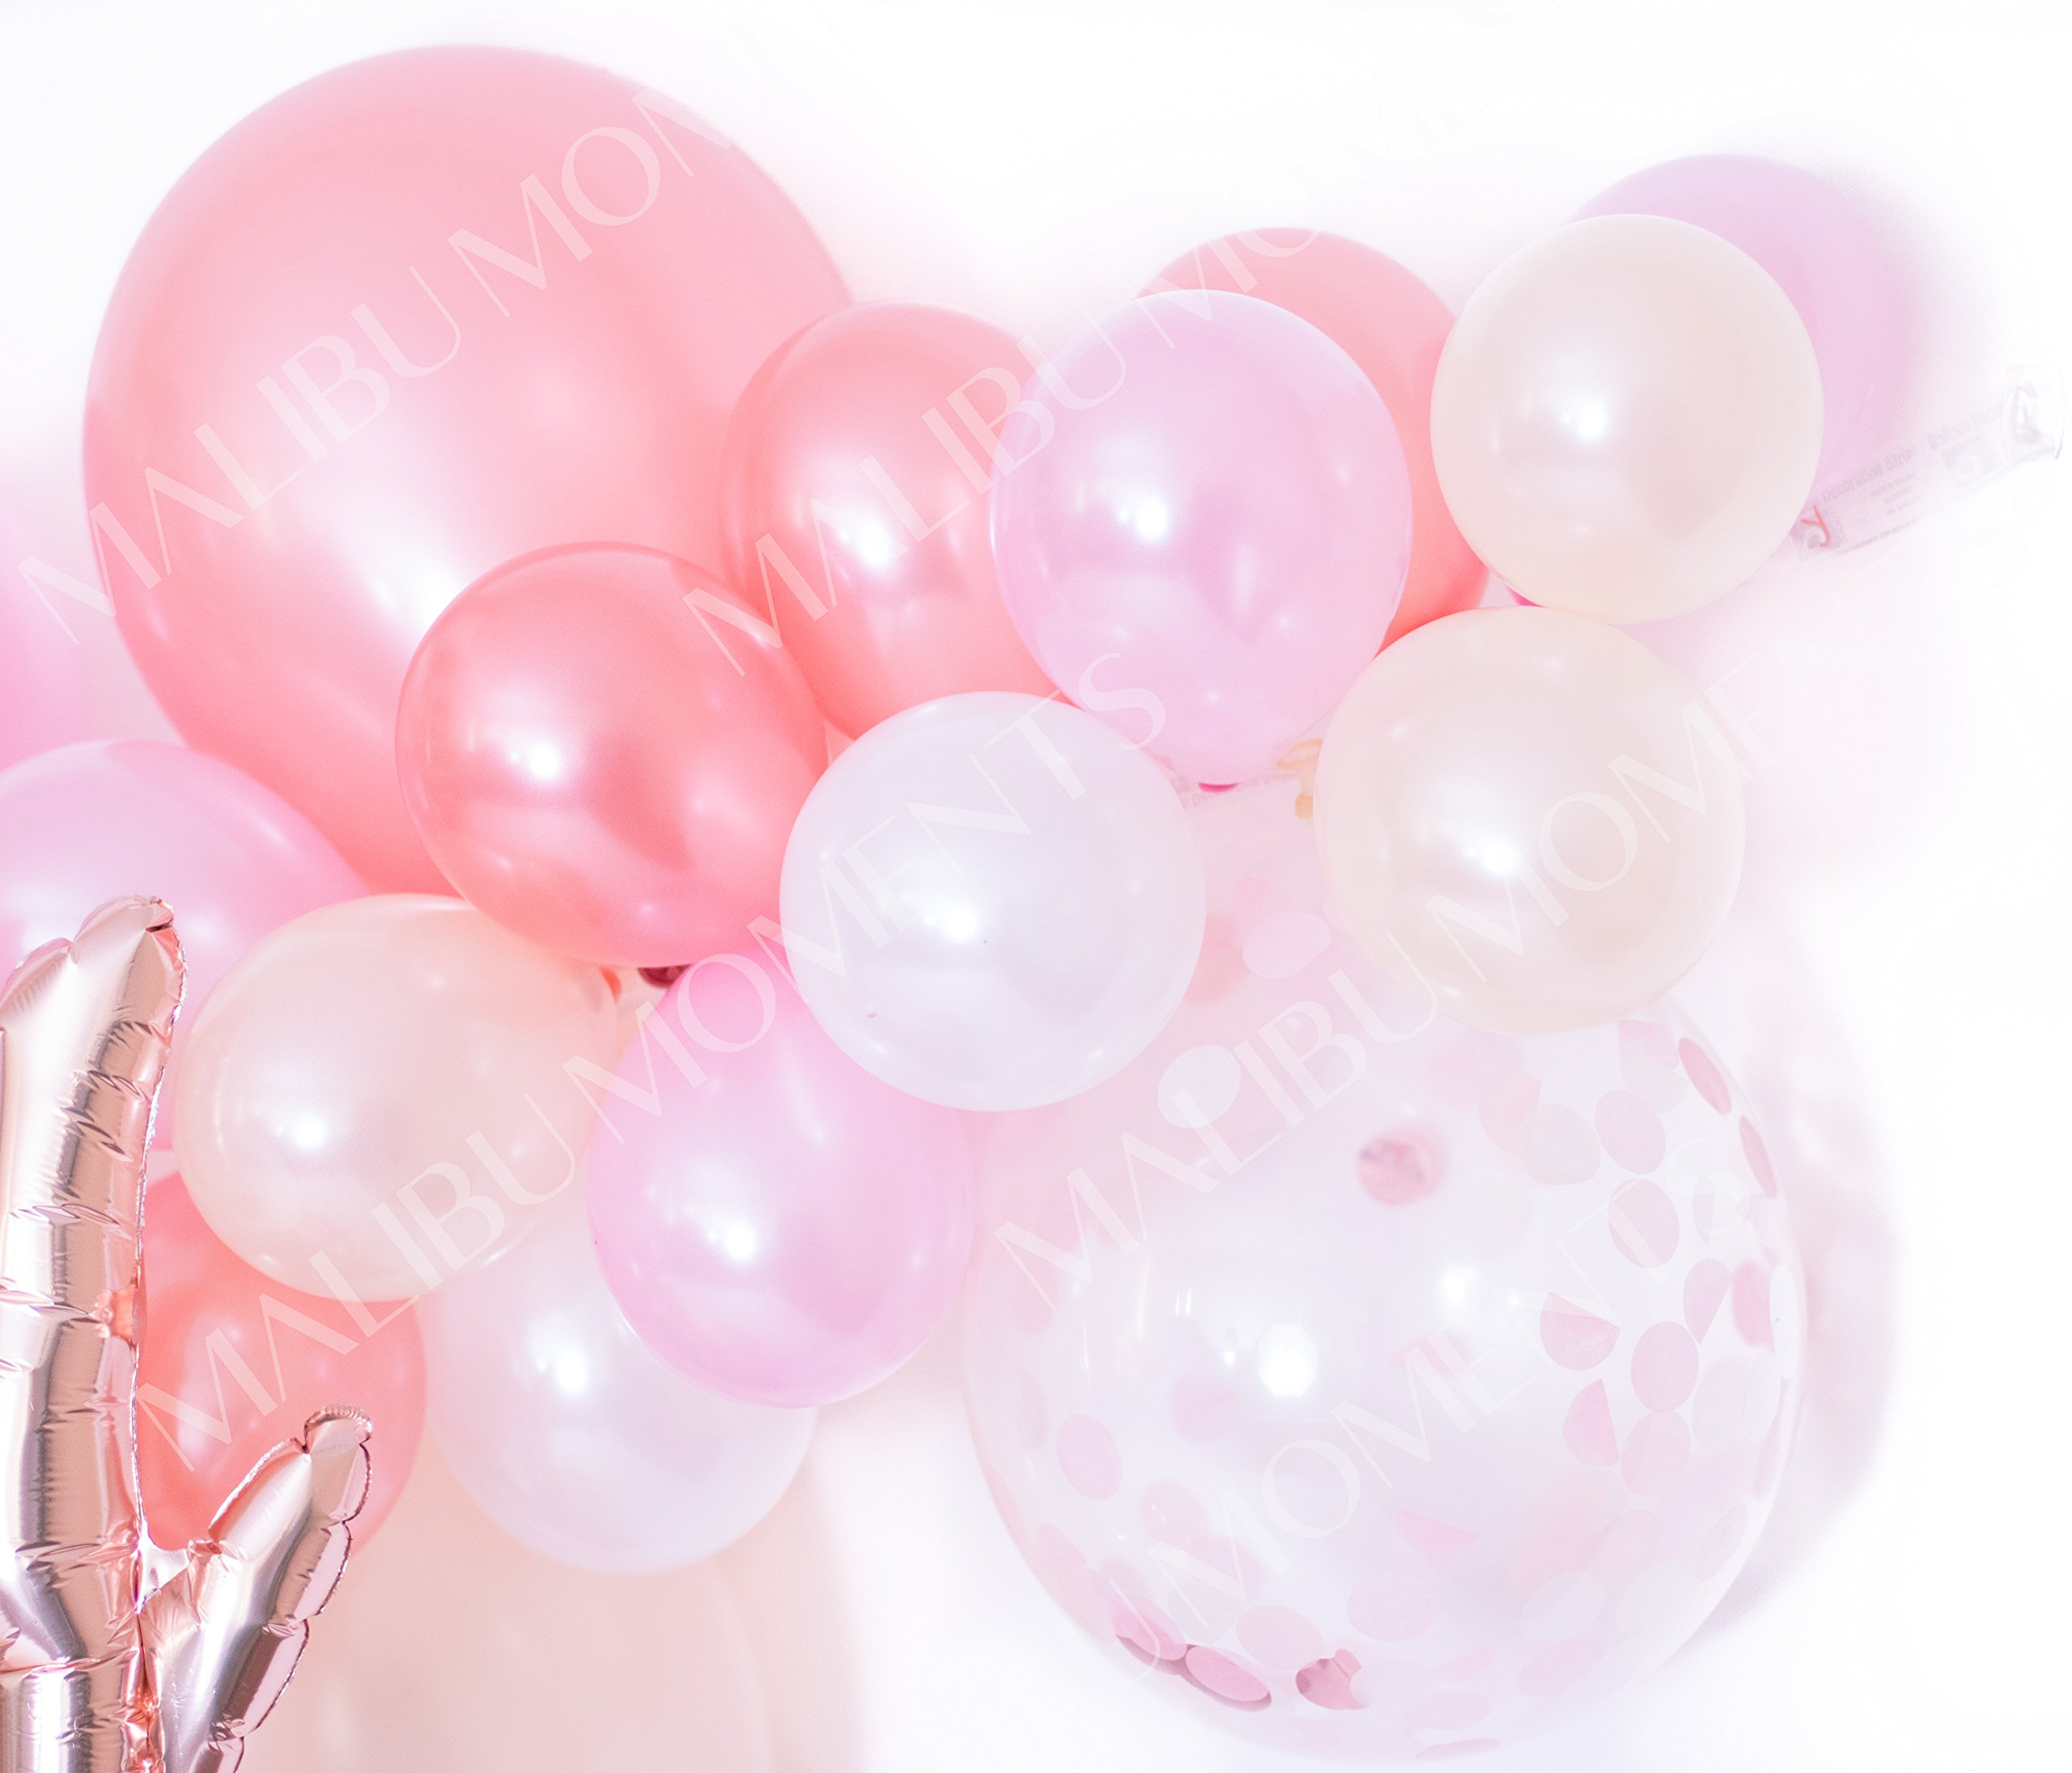 Baby Shower Decorations for Girl   Baby Girl Party Supplies  It's a Girl   Balloon Garland with 72 Balloons 11'' & 5'' Pink, Blush and Confetti with Rose Gold Baby Script Balloon (Pink) by Malibu Moments (Image #4)